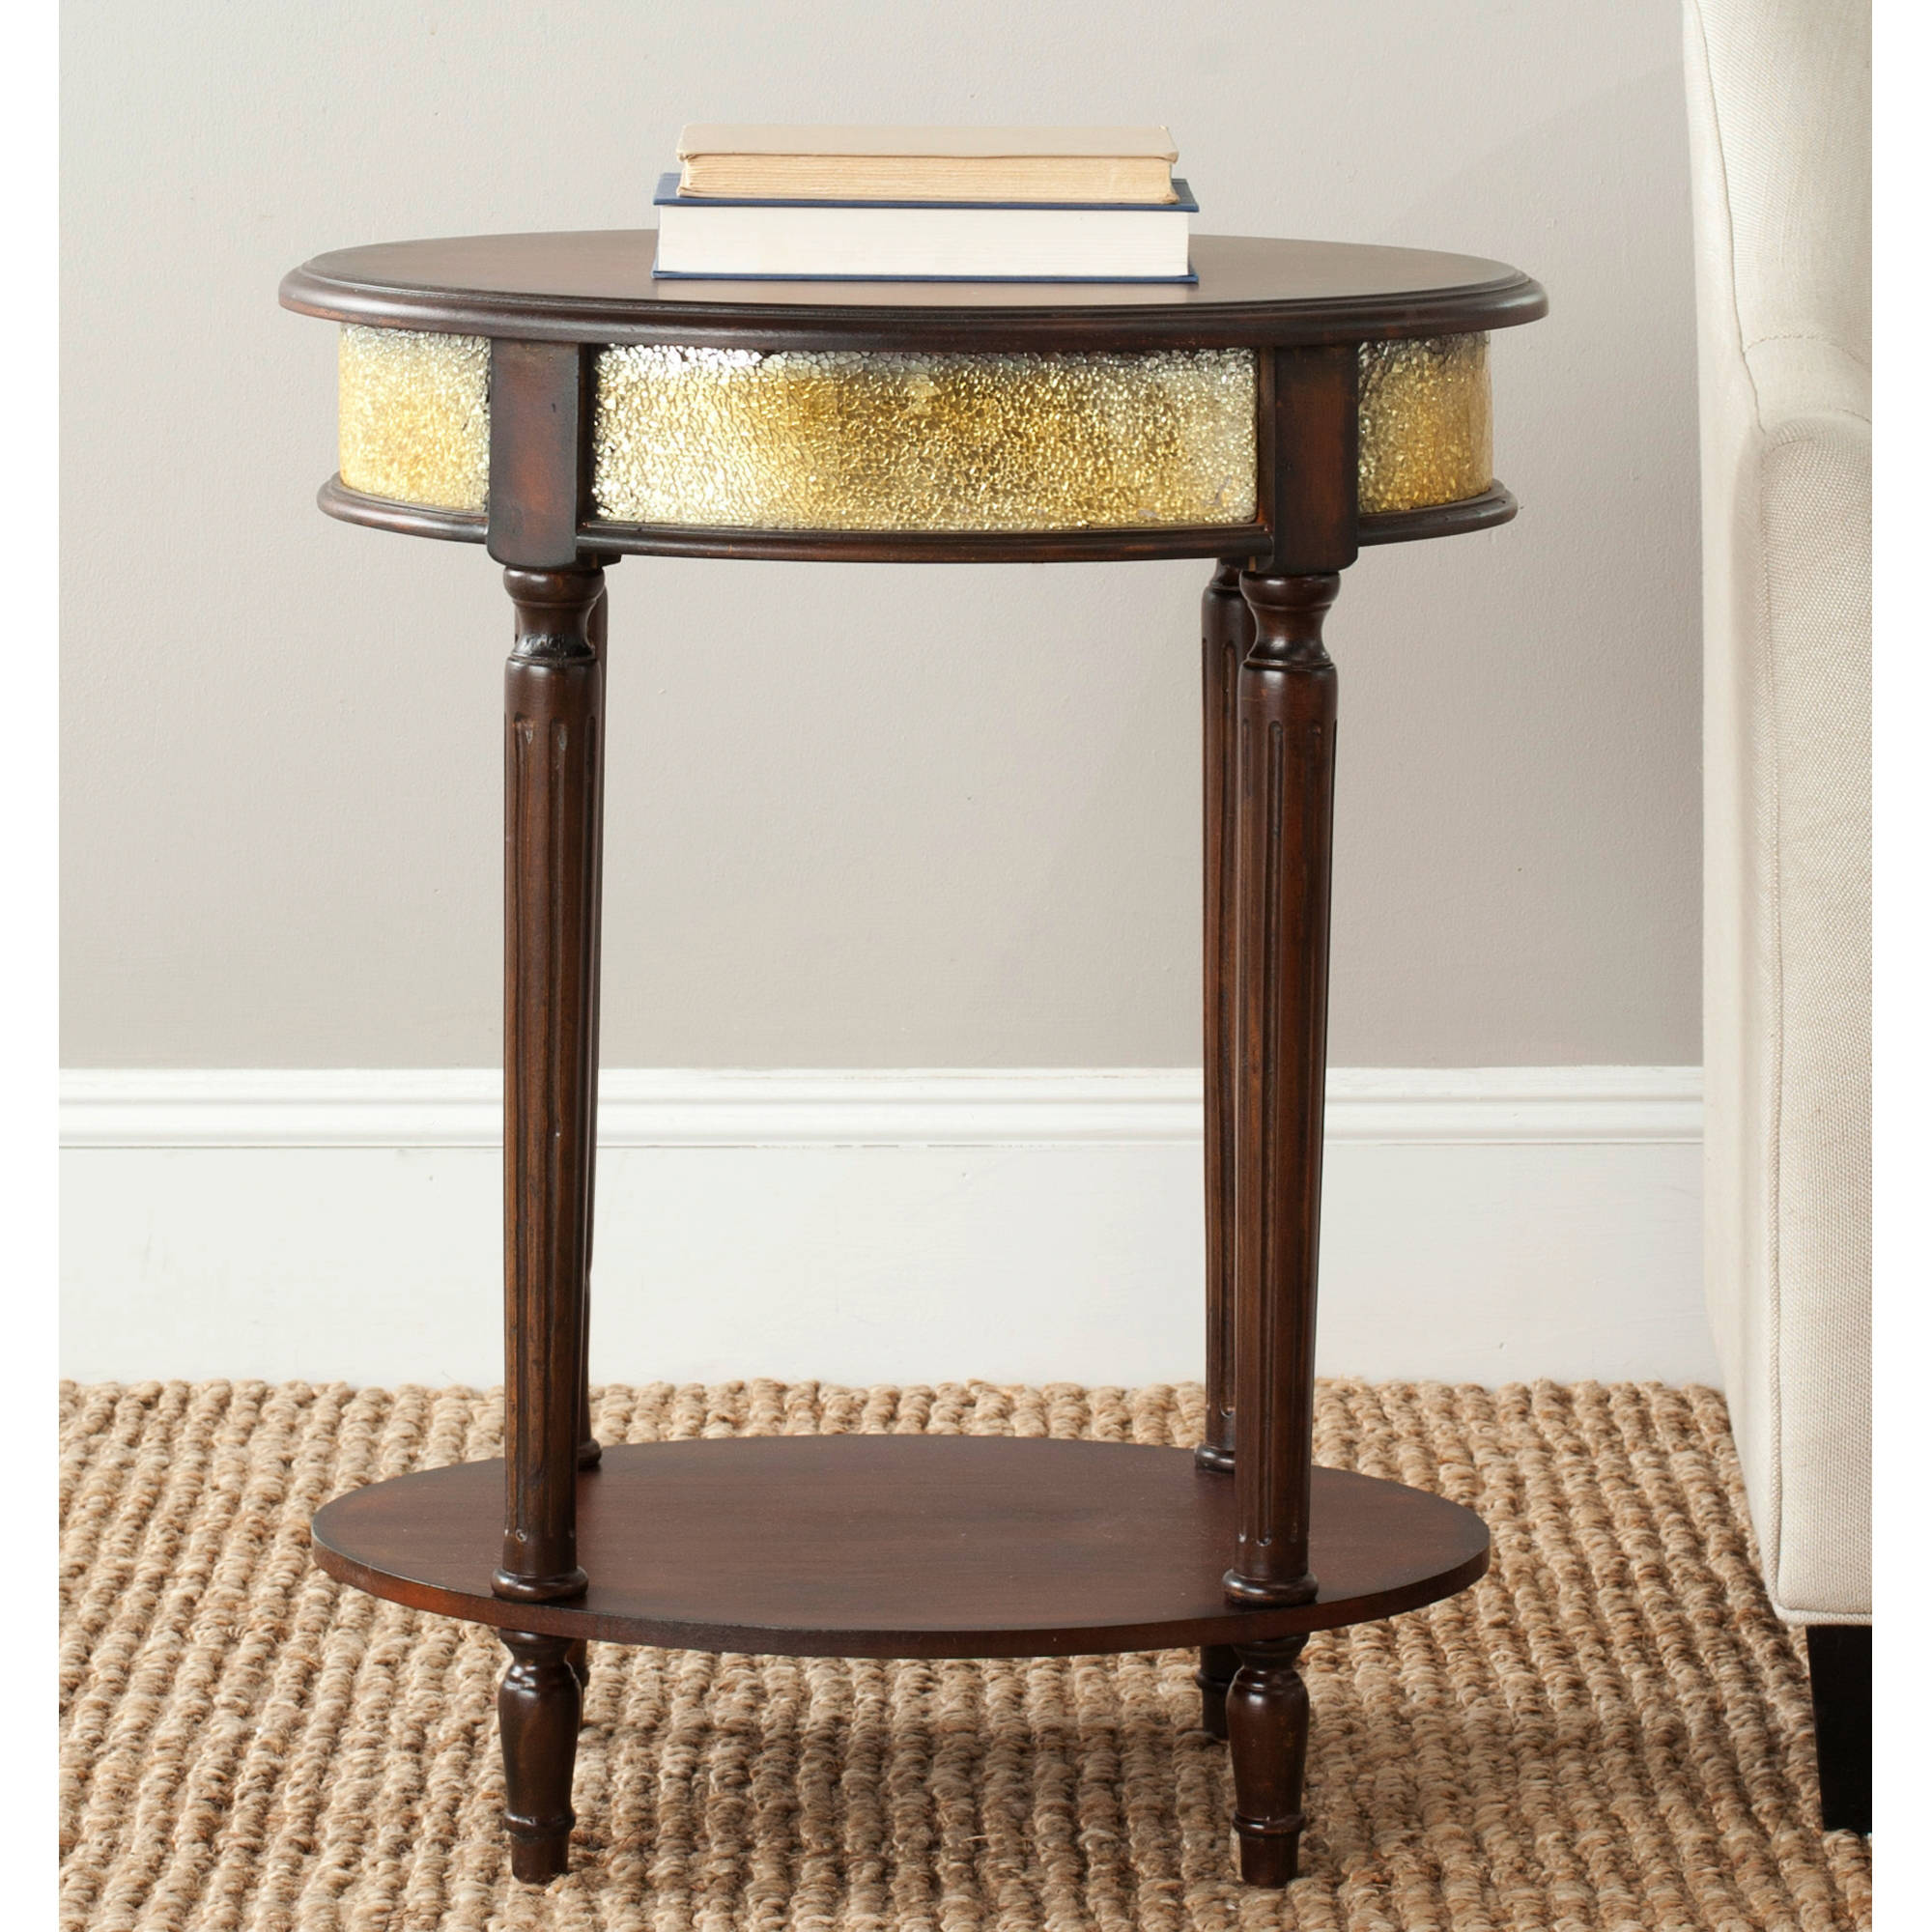 Safavieh Bernice Side Table, Dark Brown and Gold